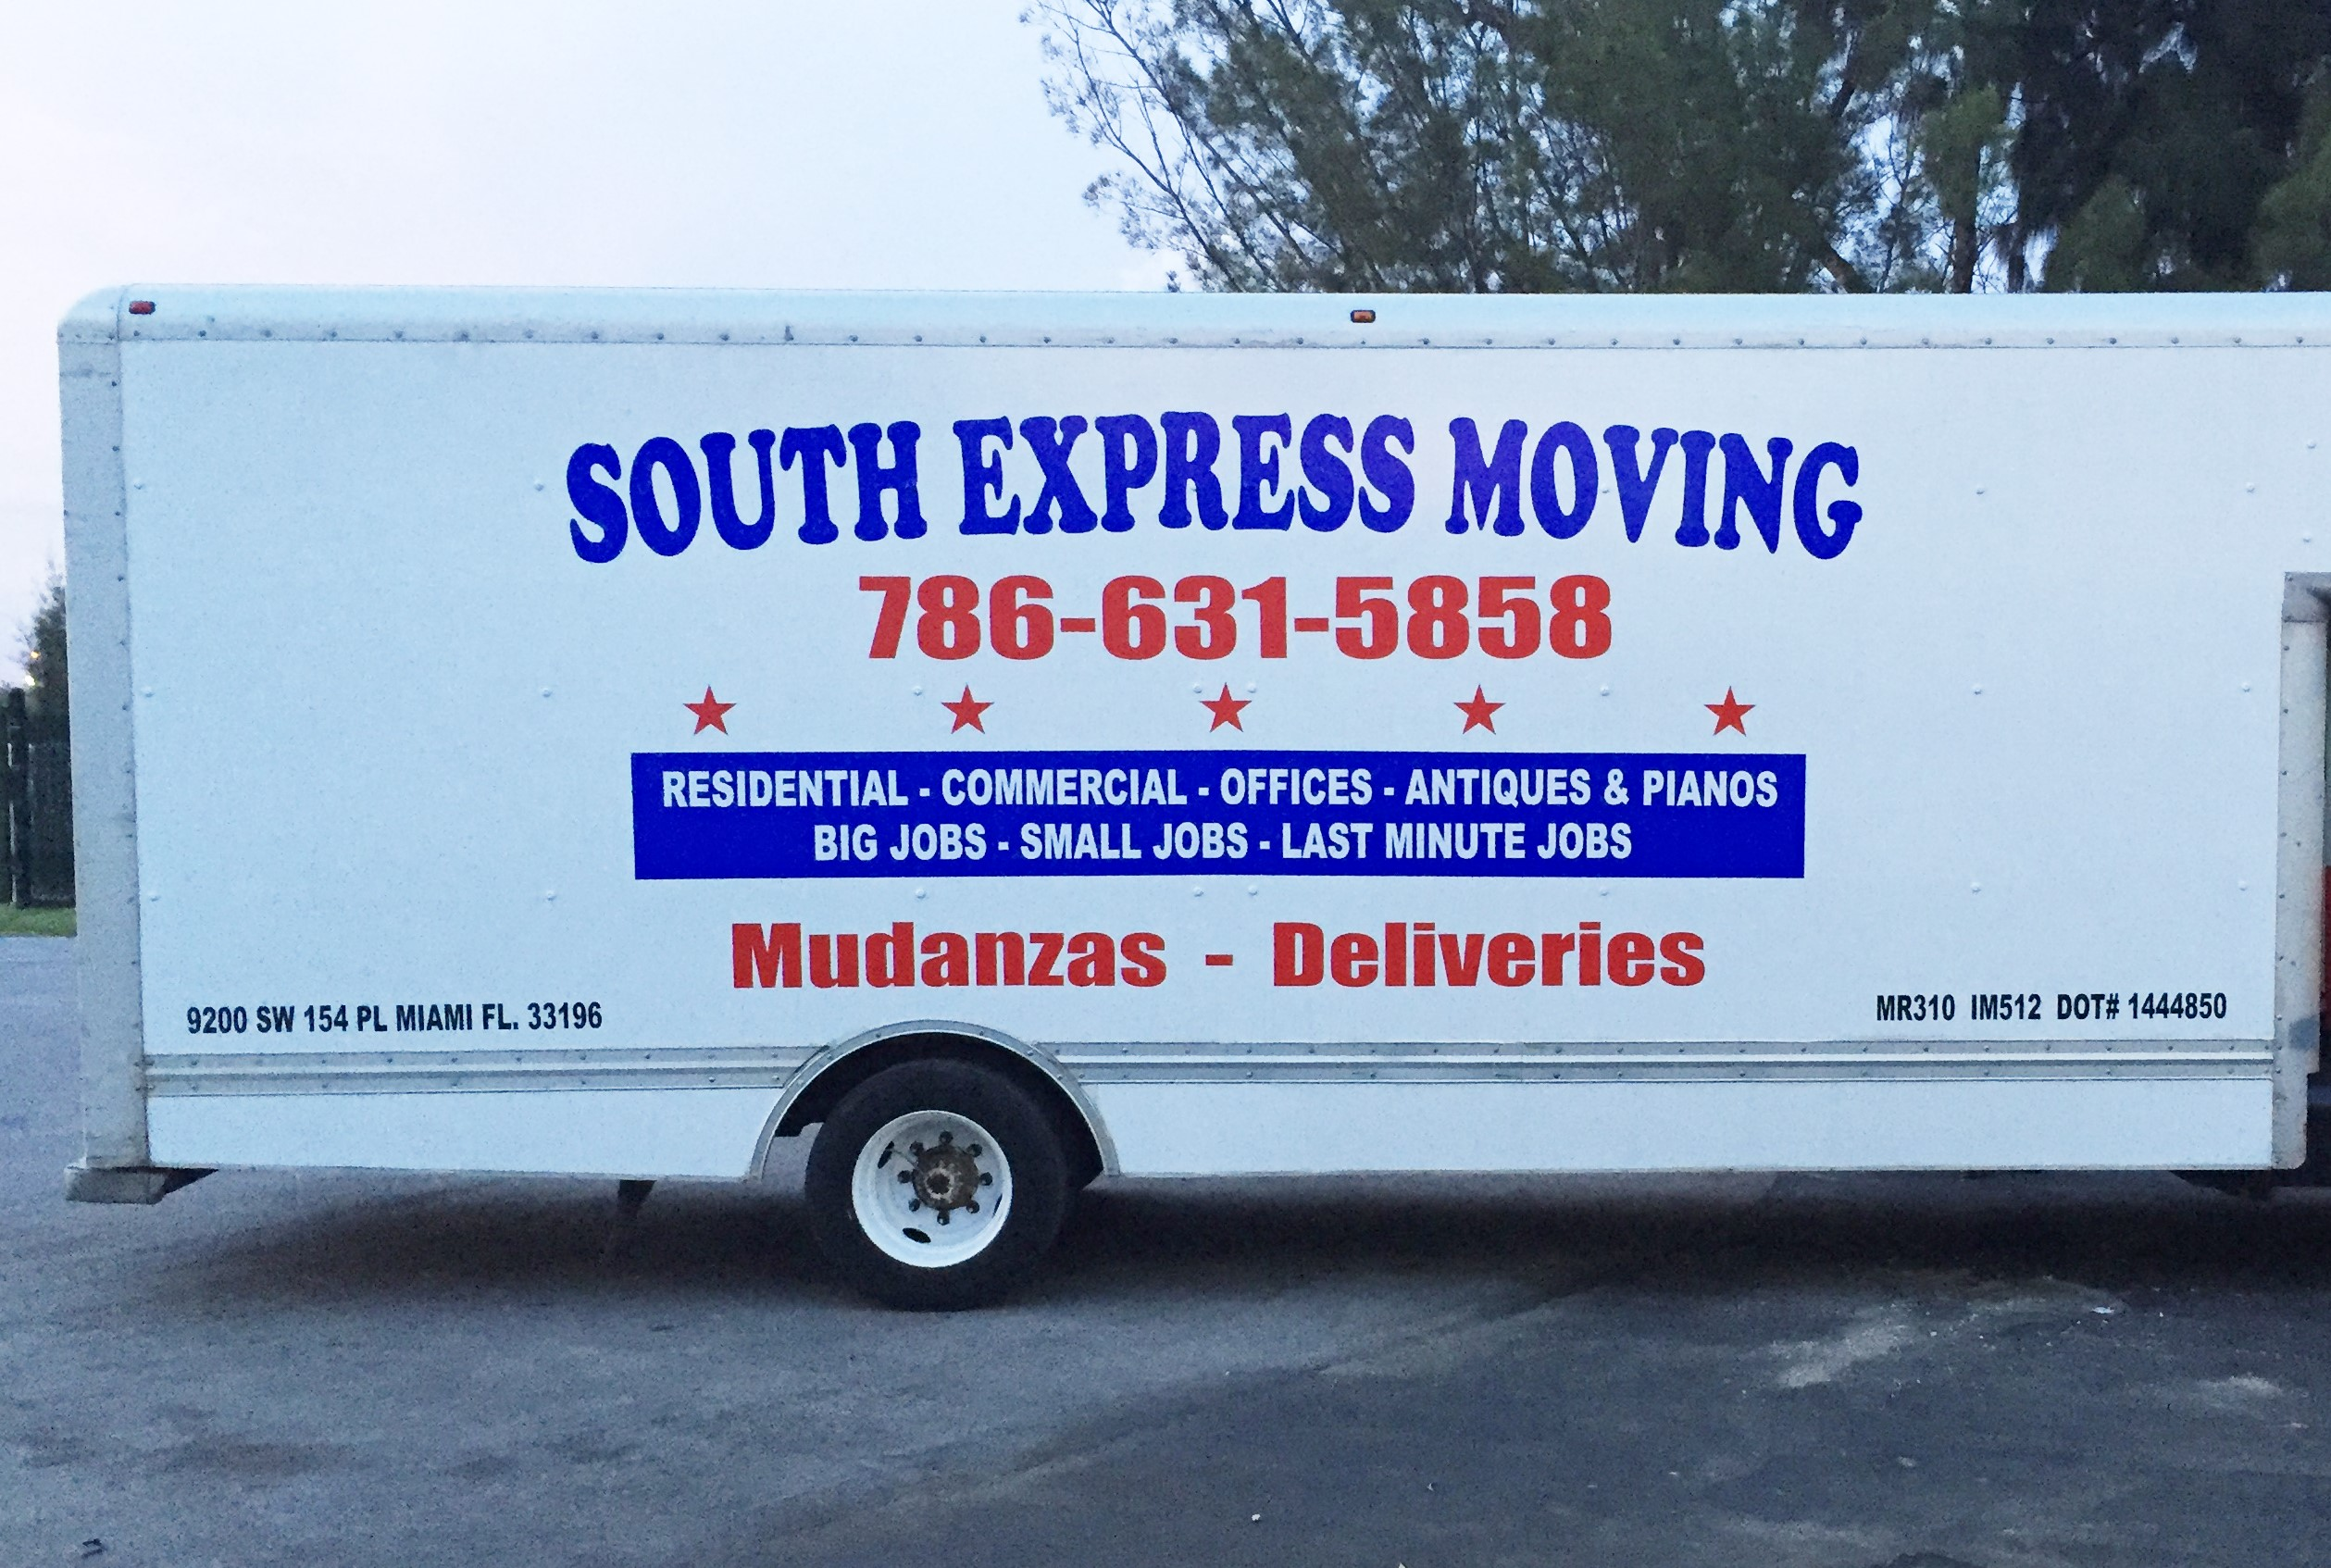 Sergio's Moving Corp  Dba South Express Moving, Miami. Master In Math Education Challenge In Spanish. Speed Limit Traffic Signs Companies With Apps. Vehicle Accident Attorney Etl Tools Examples. Luxury Southern Home Plans Hyundai Sonata Suv